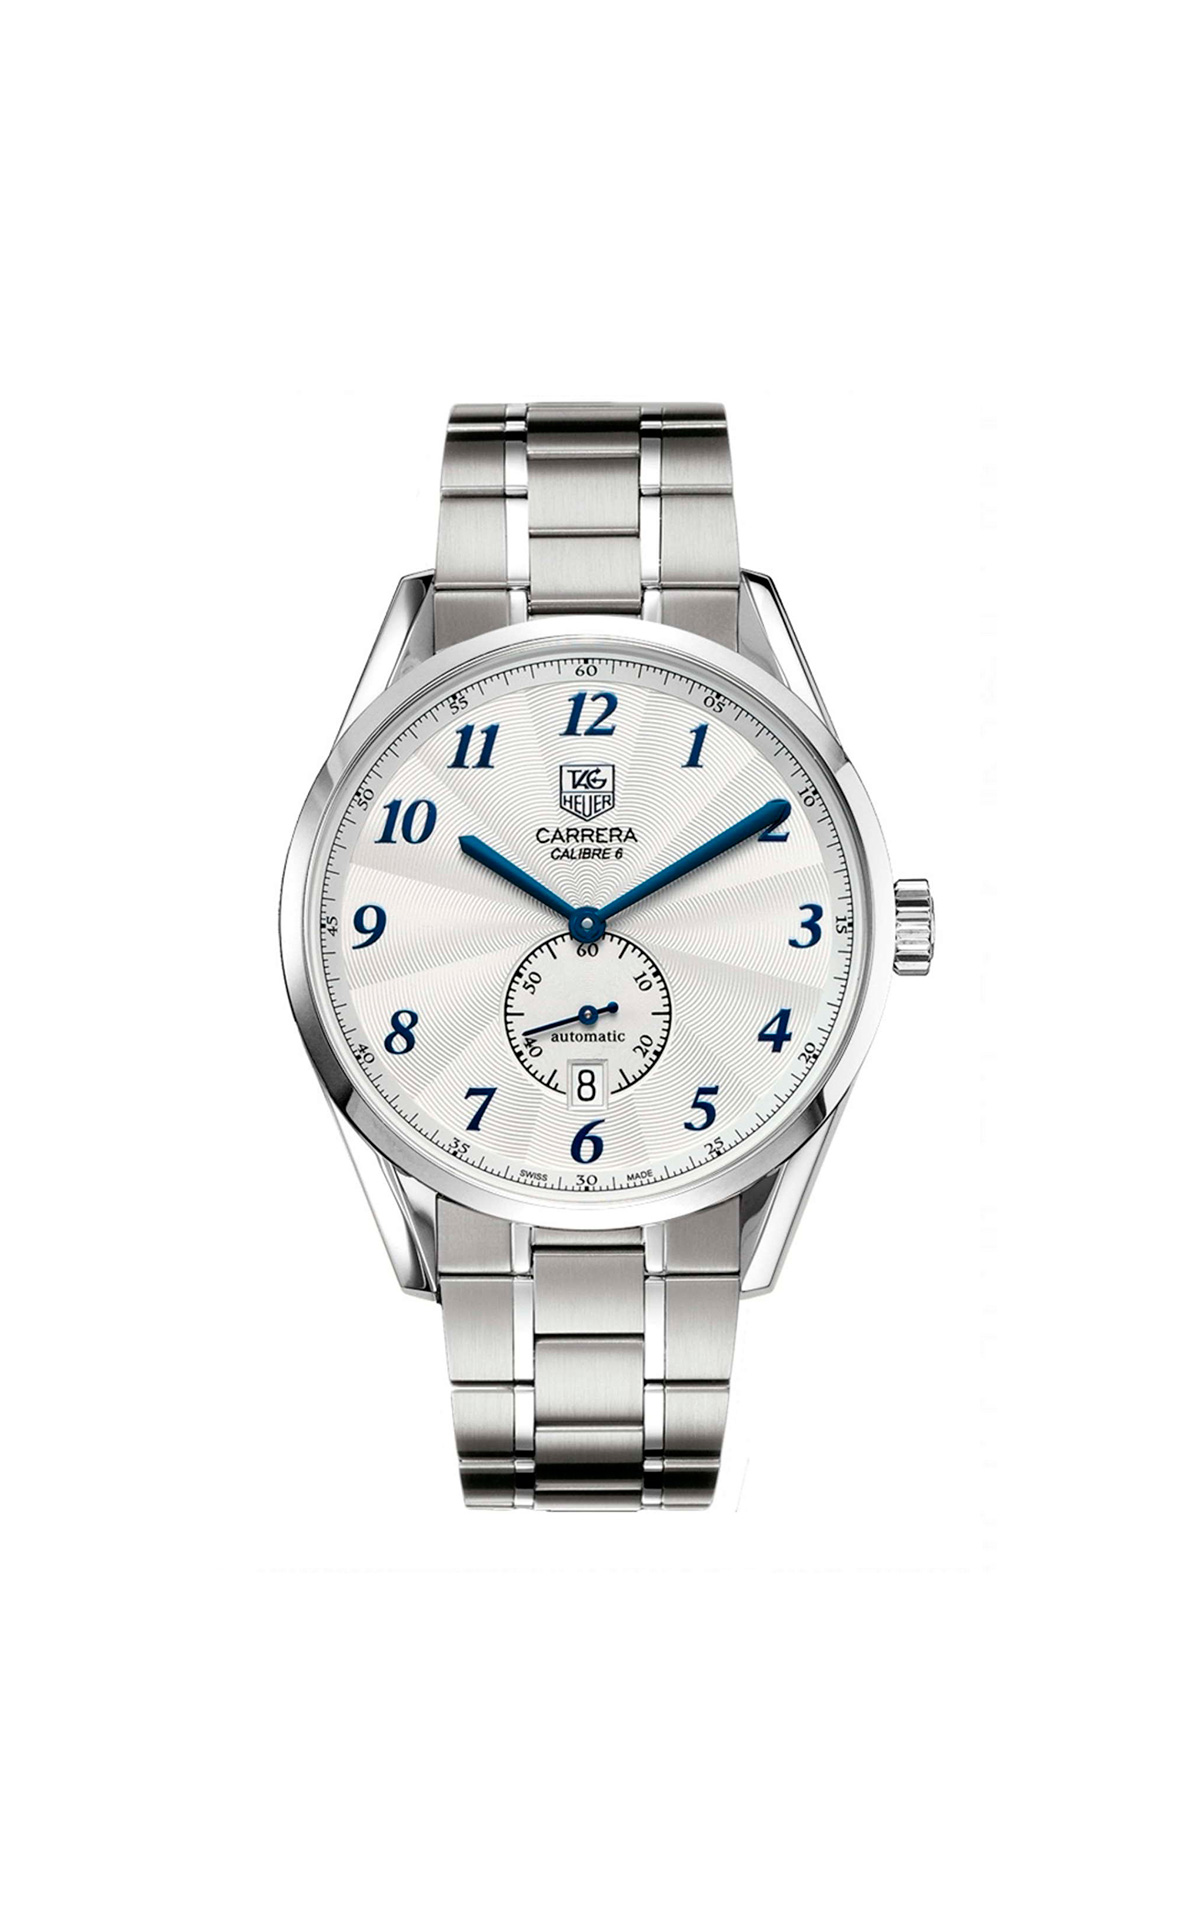 Silver Carrera watch with blue details TAG Heuer